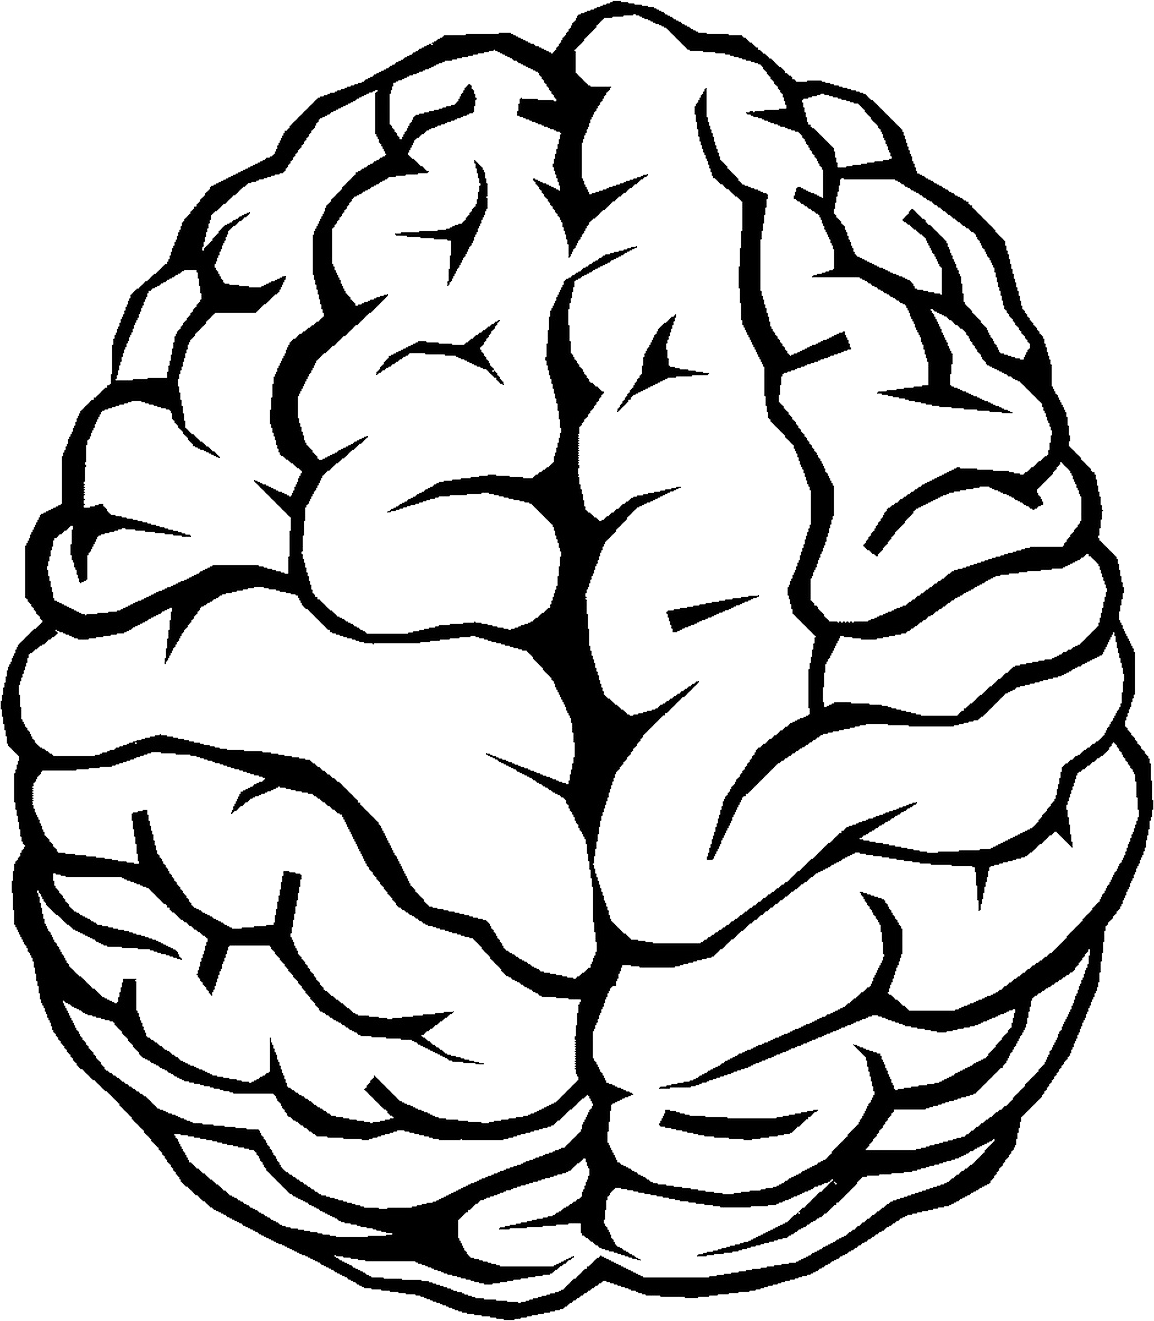 Brain Outline PNG Image.